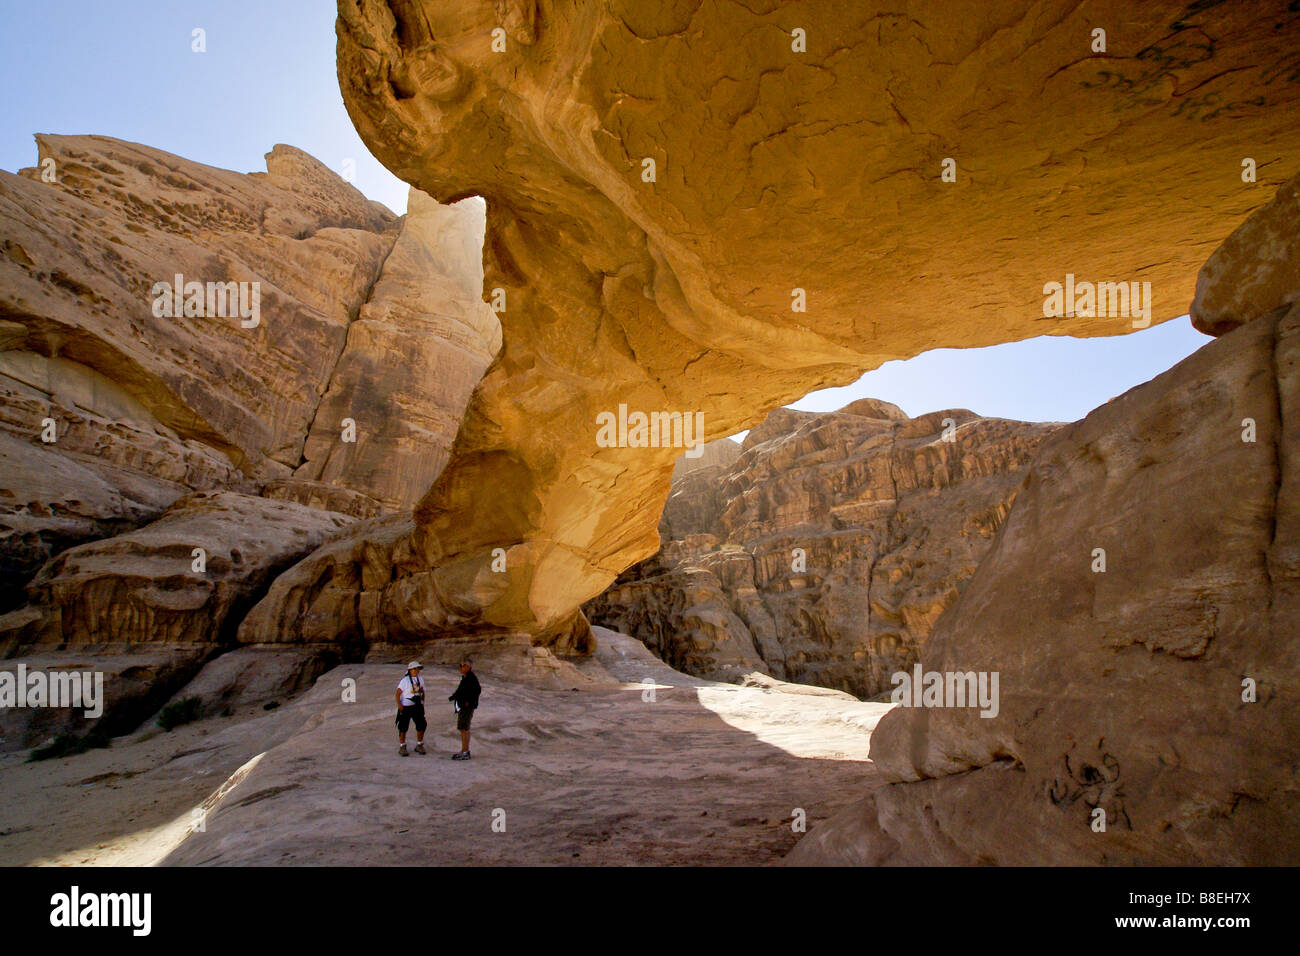 Hikers under natural arch, Wadi Rum, Jordan - Stock Image